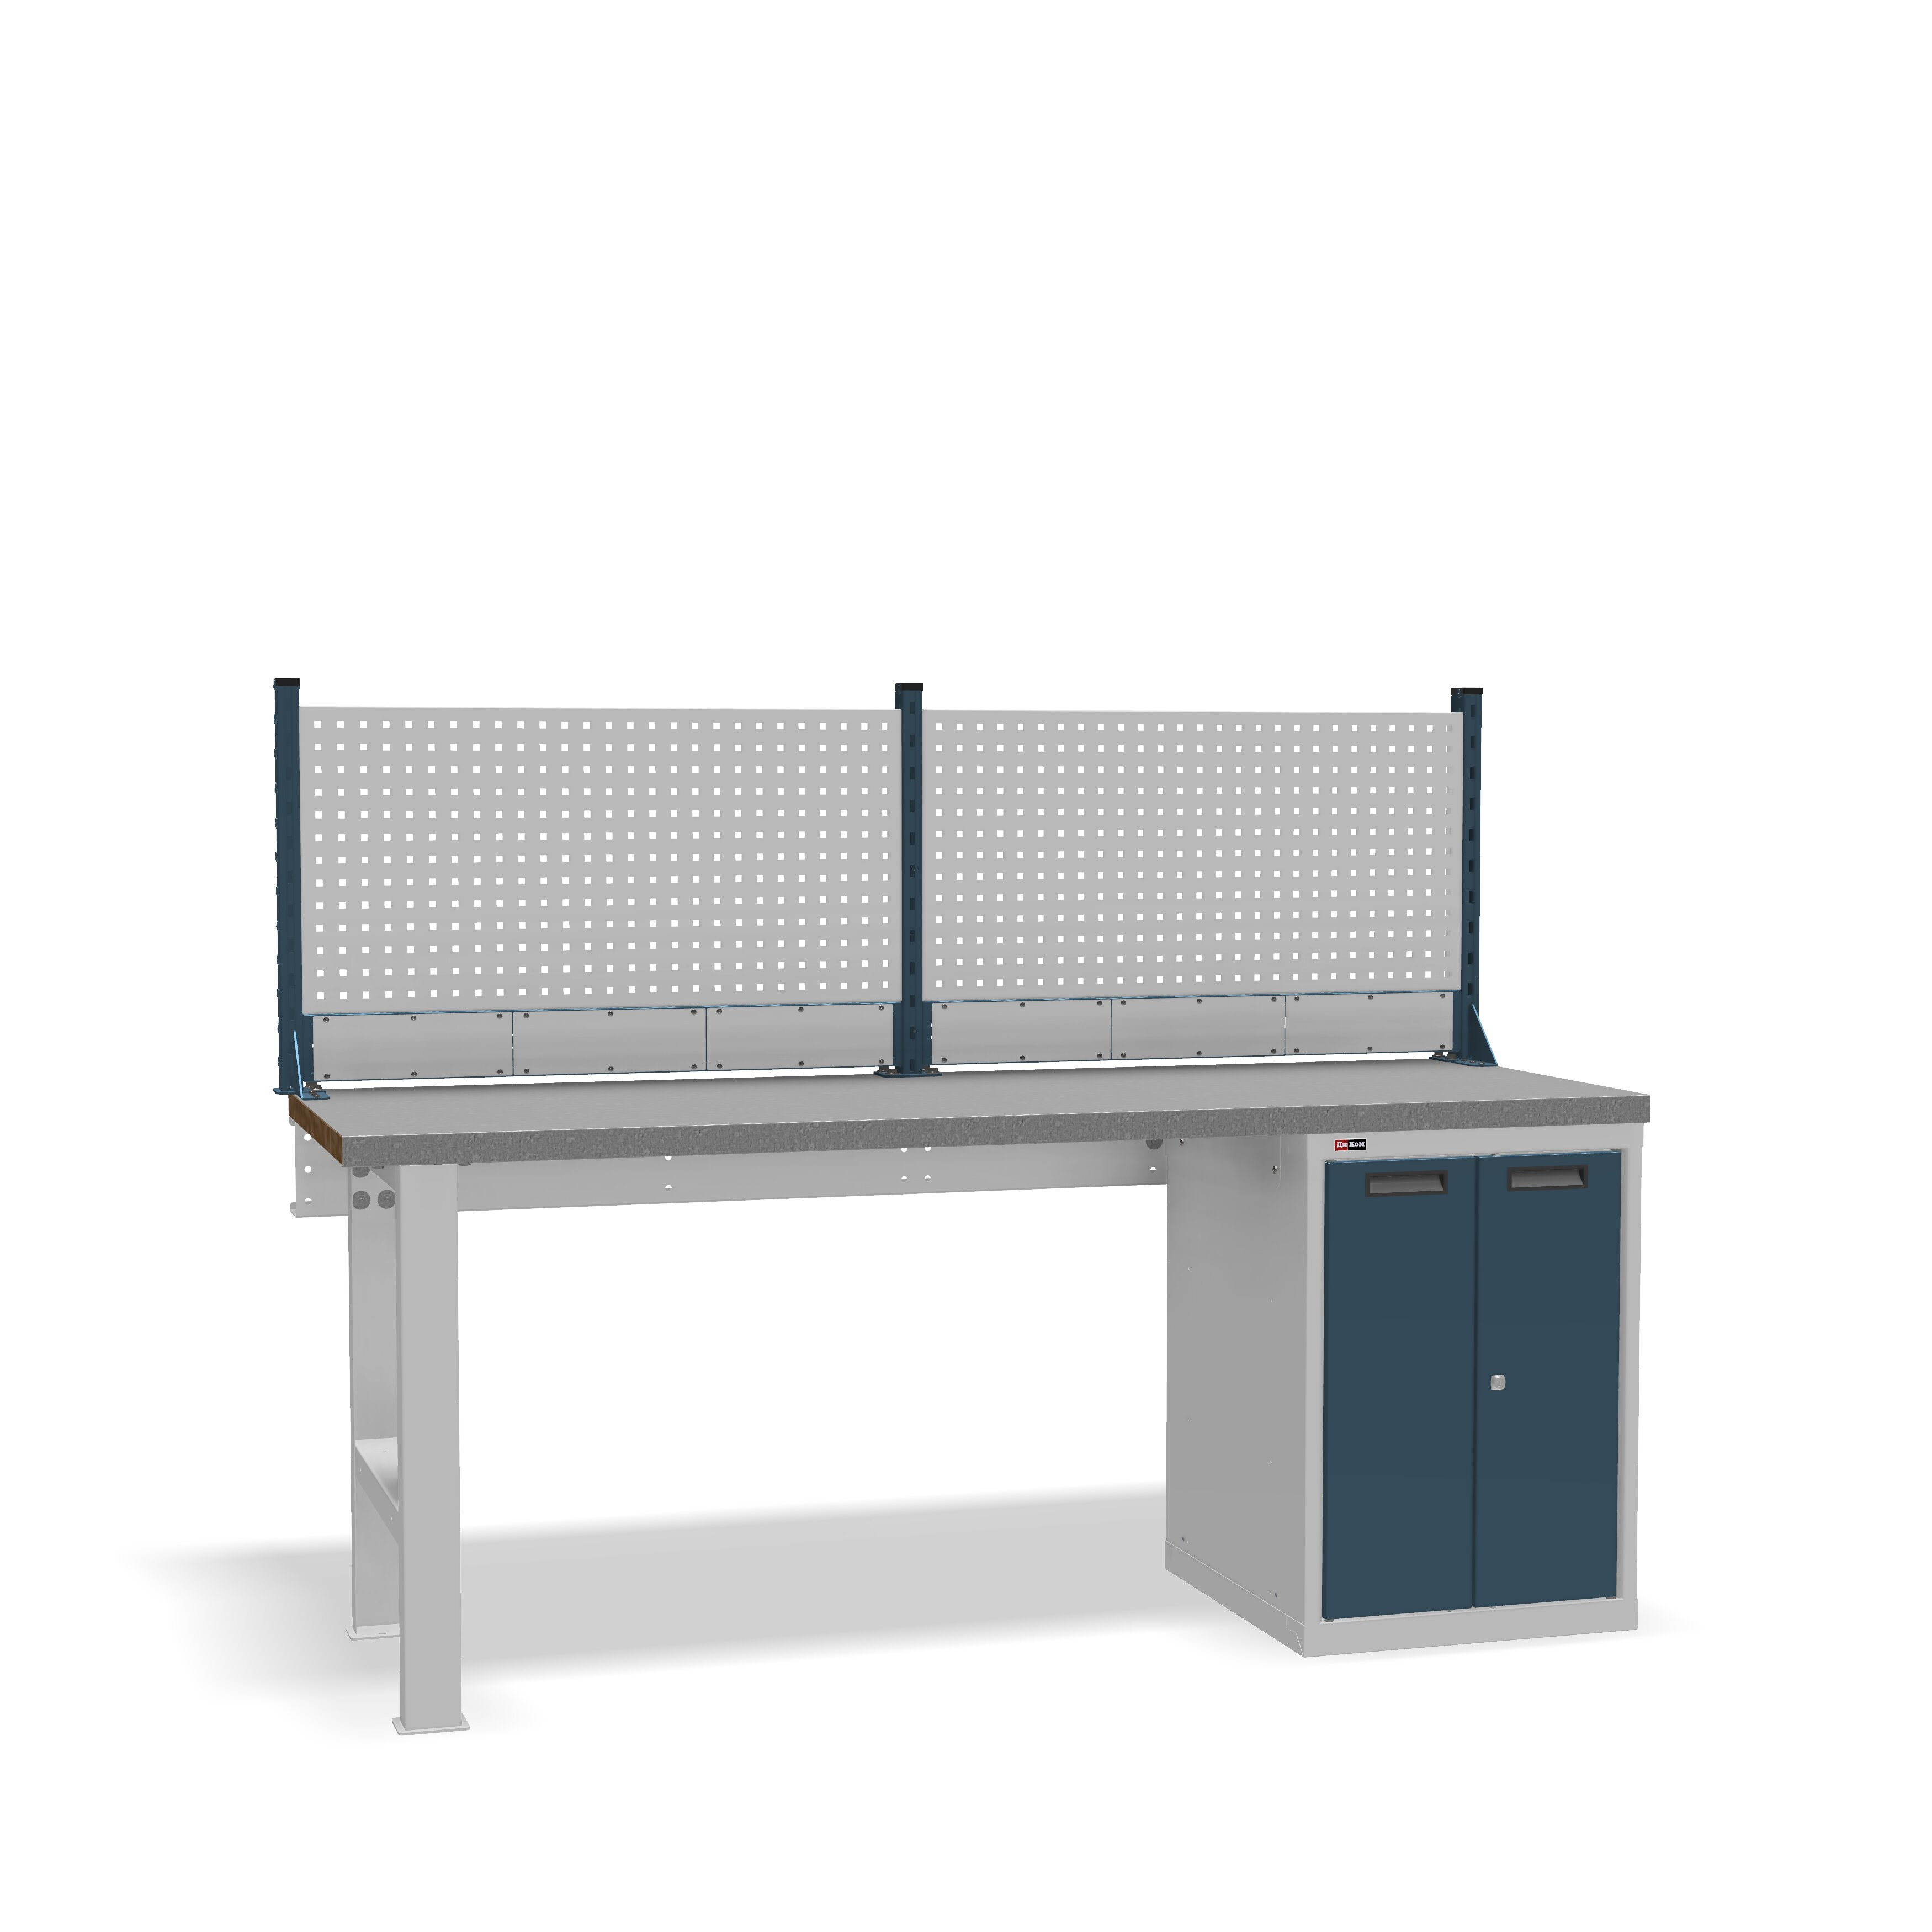 DiKom VS-200-03 Workbench + DiKom Perforated Panel VS-200-E1